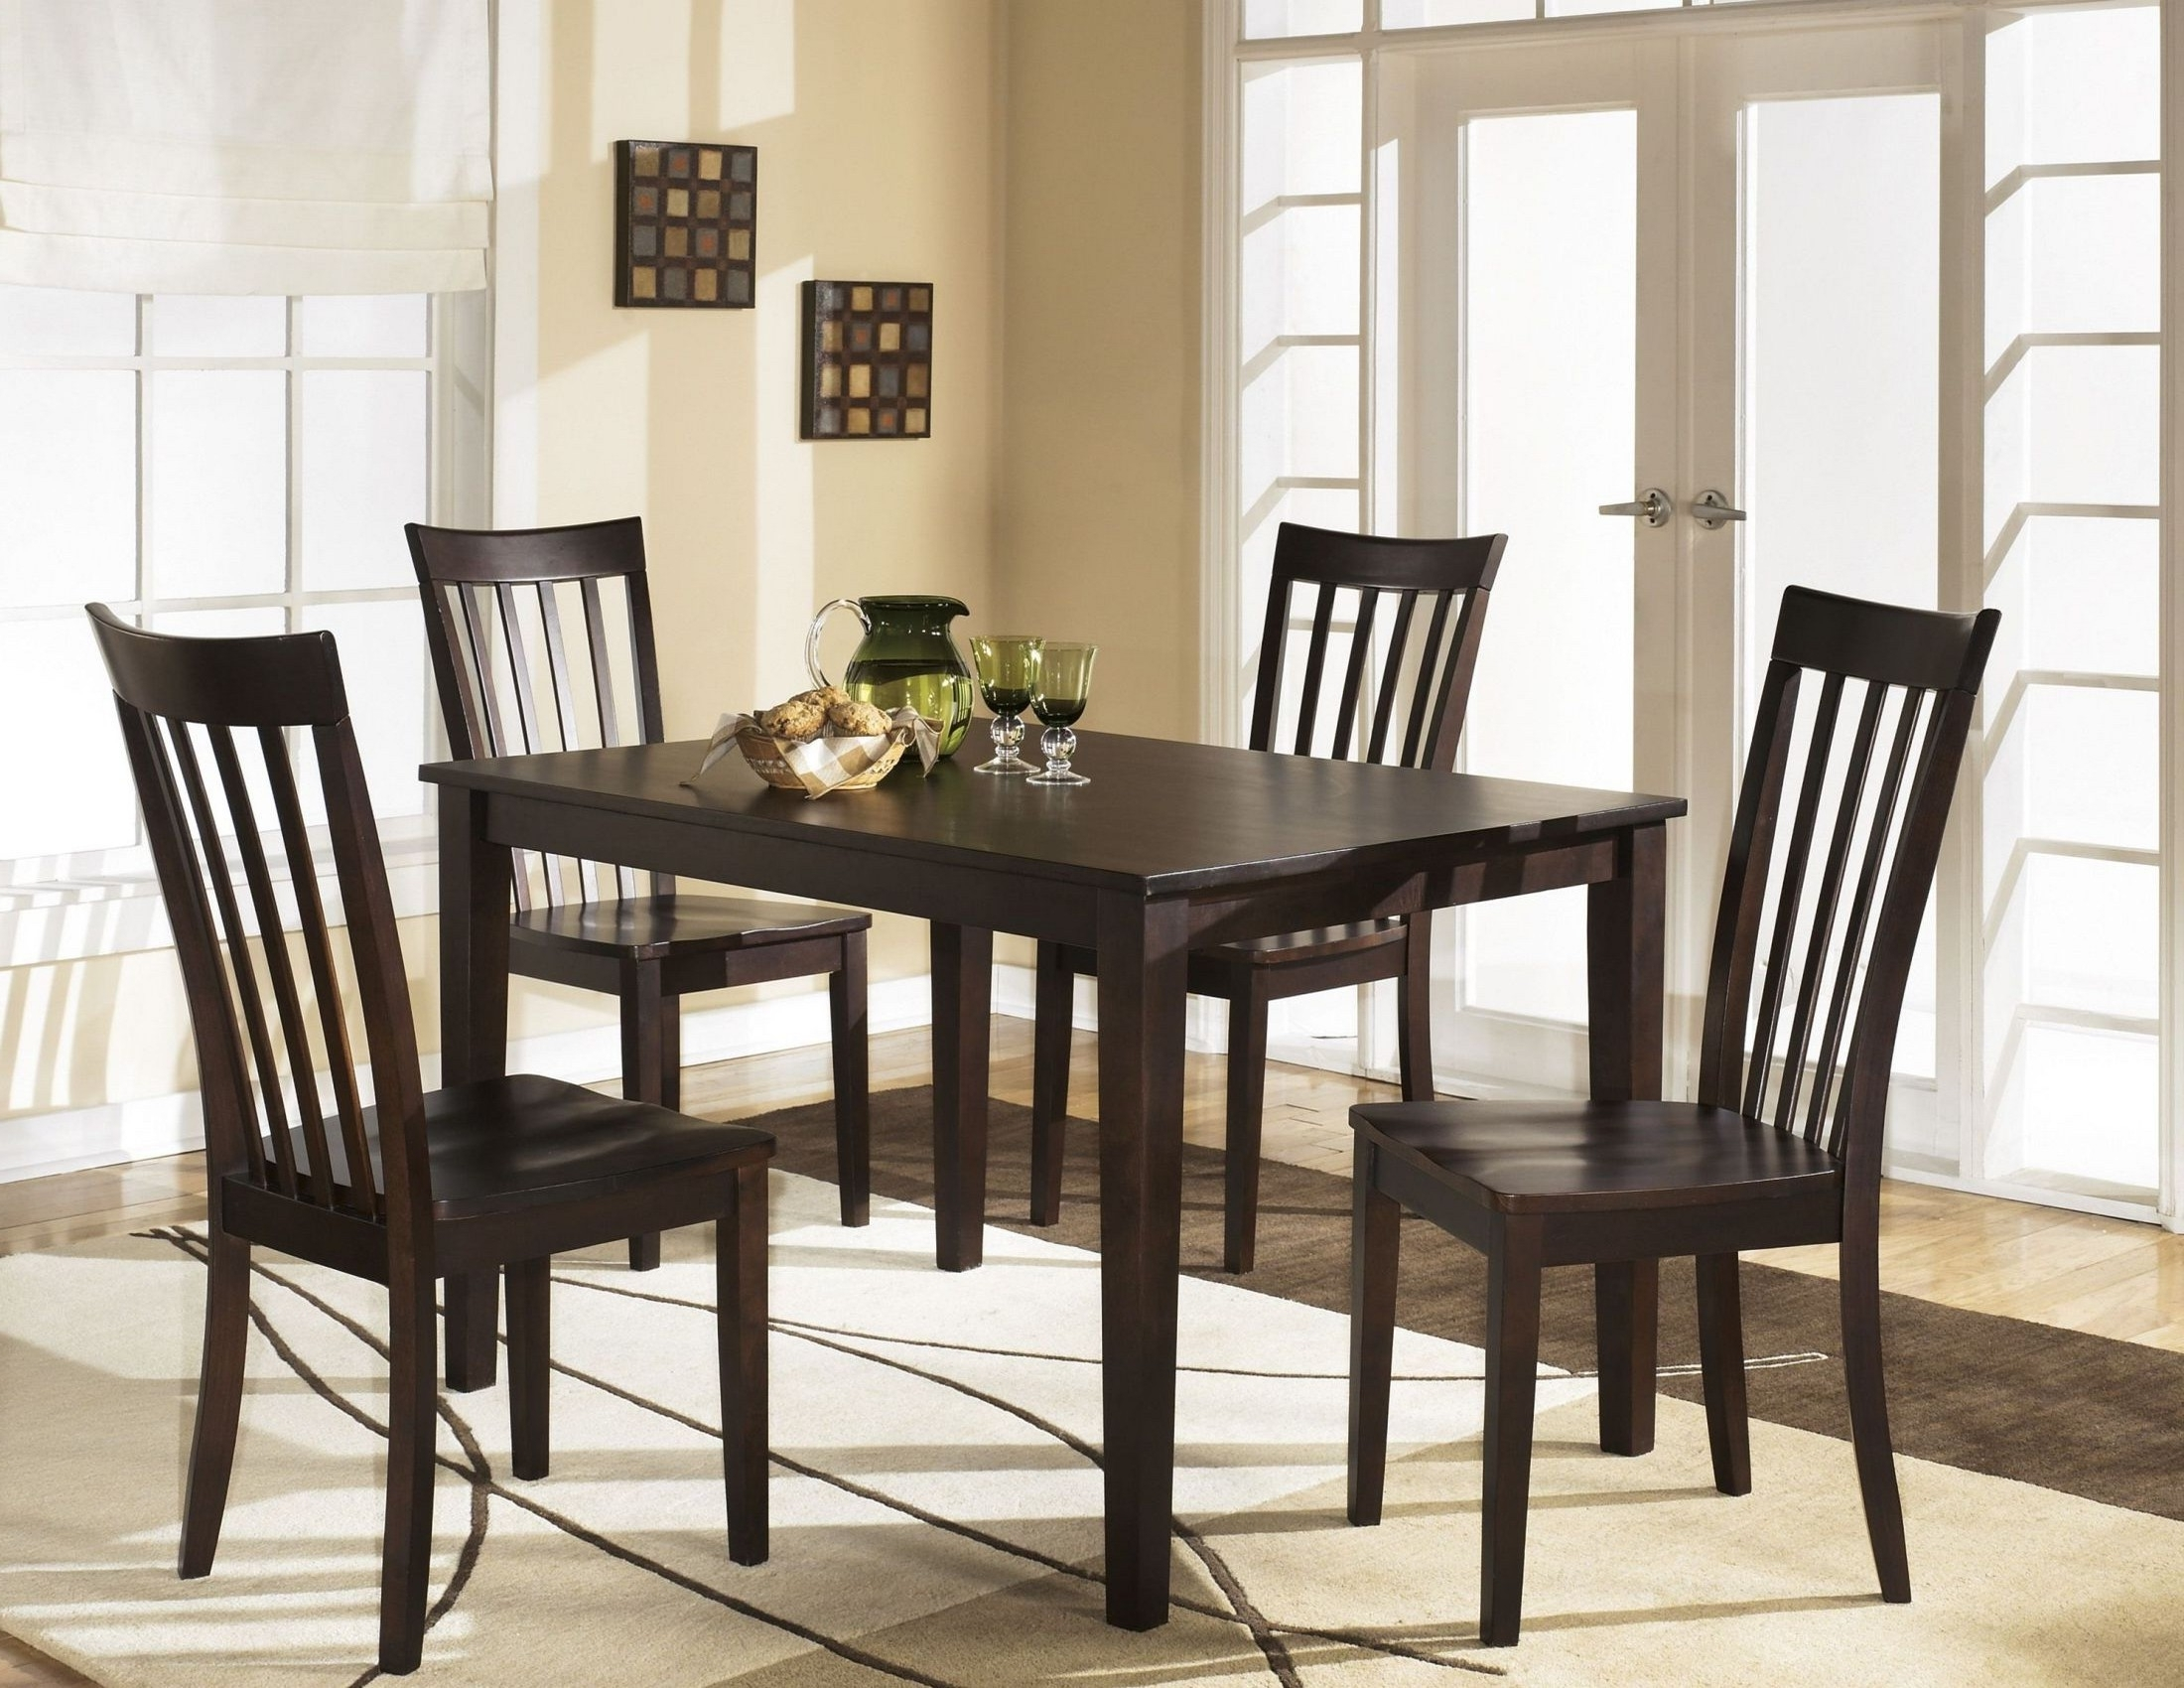 Most Recent Signature Designashley Hyland 5 Piece Casual Dining Set – Hyland With Hyland 5 Piece Counter Sets With Bench (View 16 of 25)